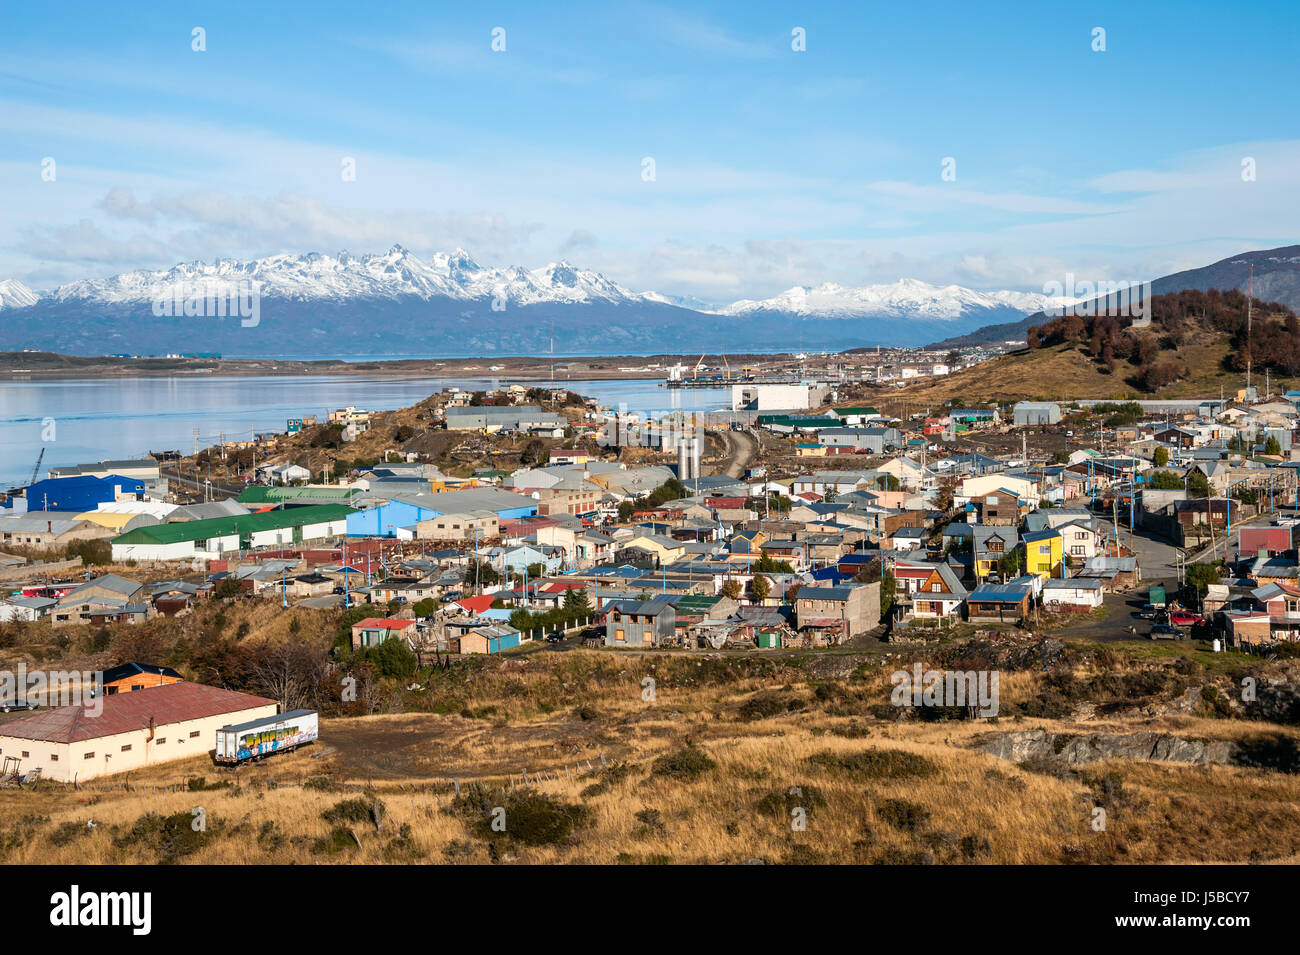 Ushuaia, Argentina - April 18, 2011: Ushuaia is the southernmost city and port in the world - capital of the Argentine - Stock Image